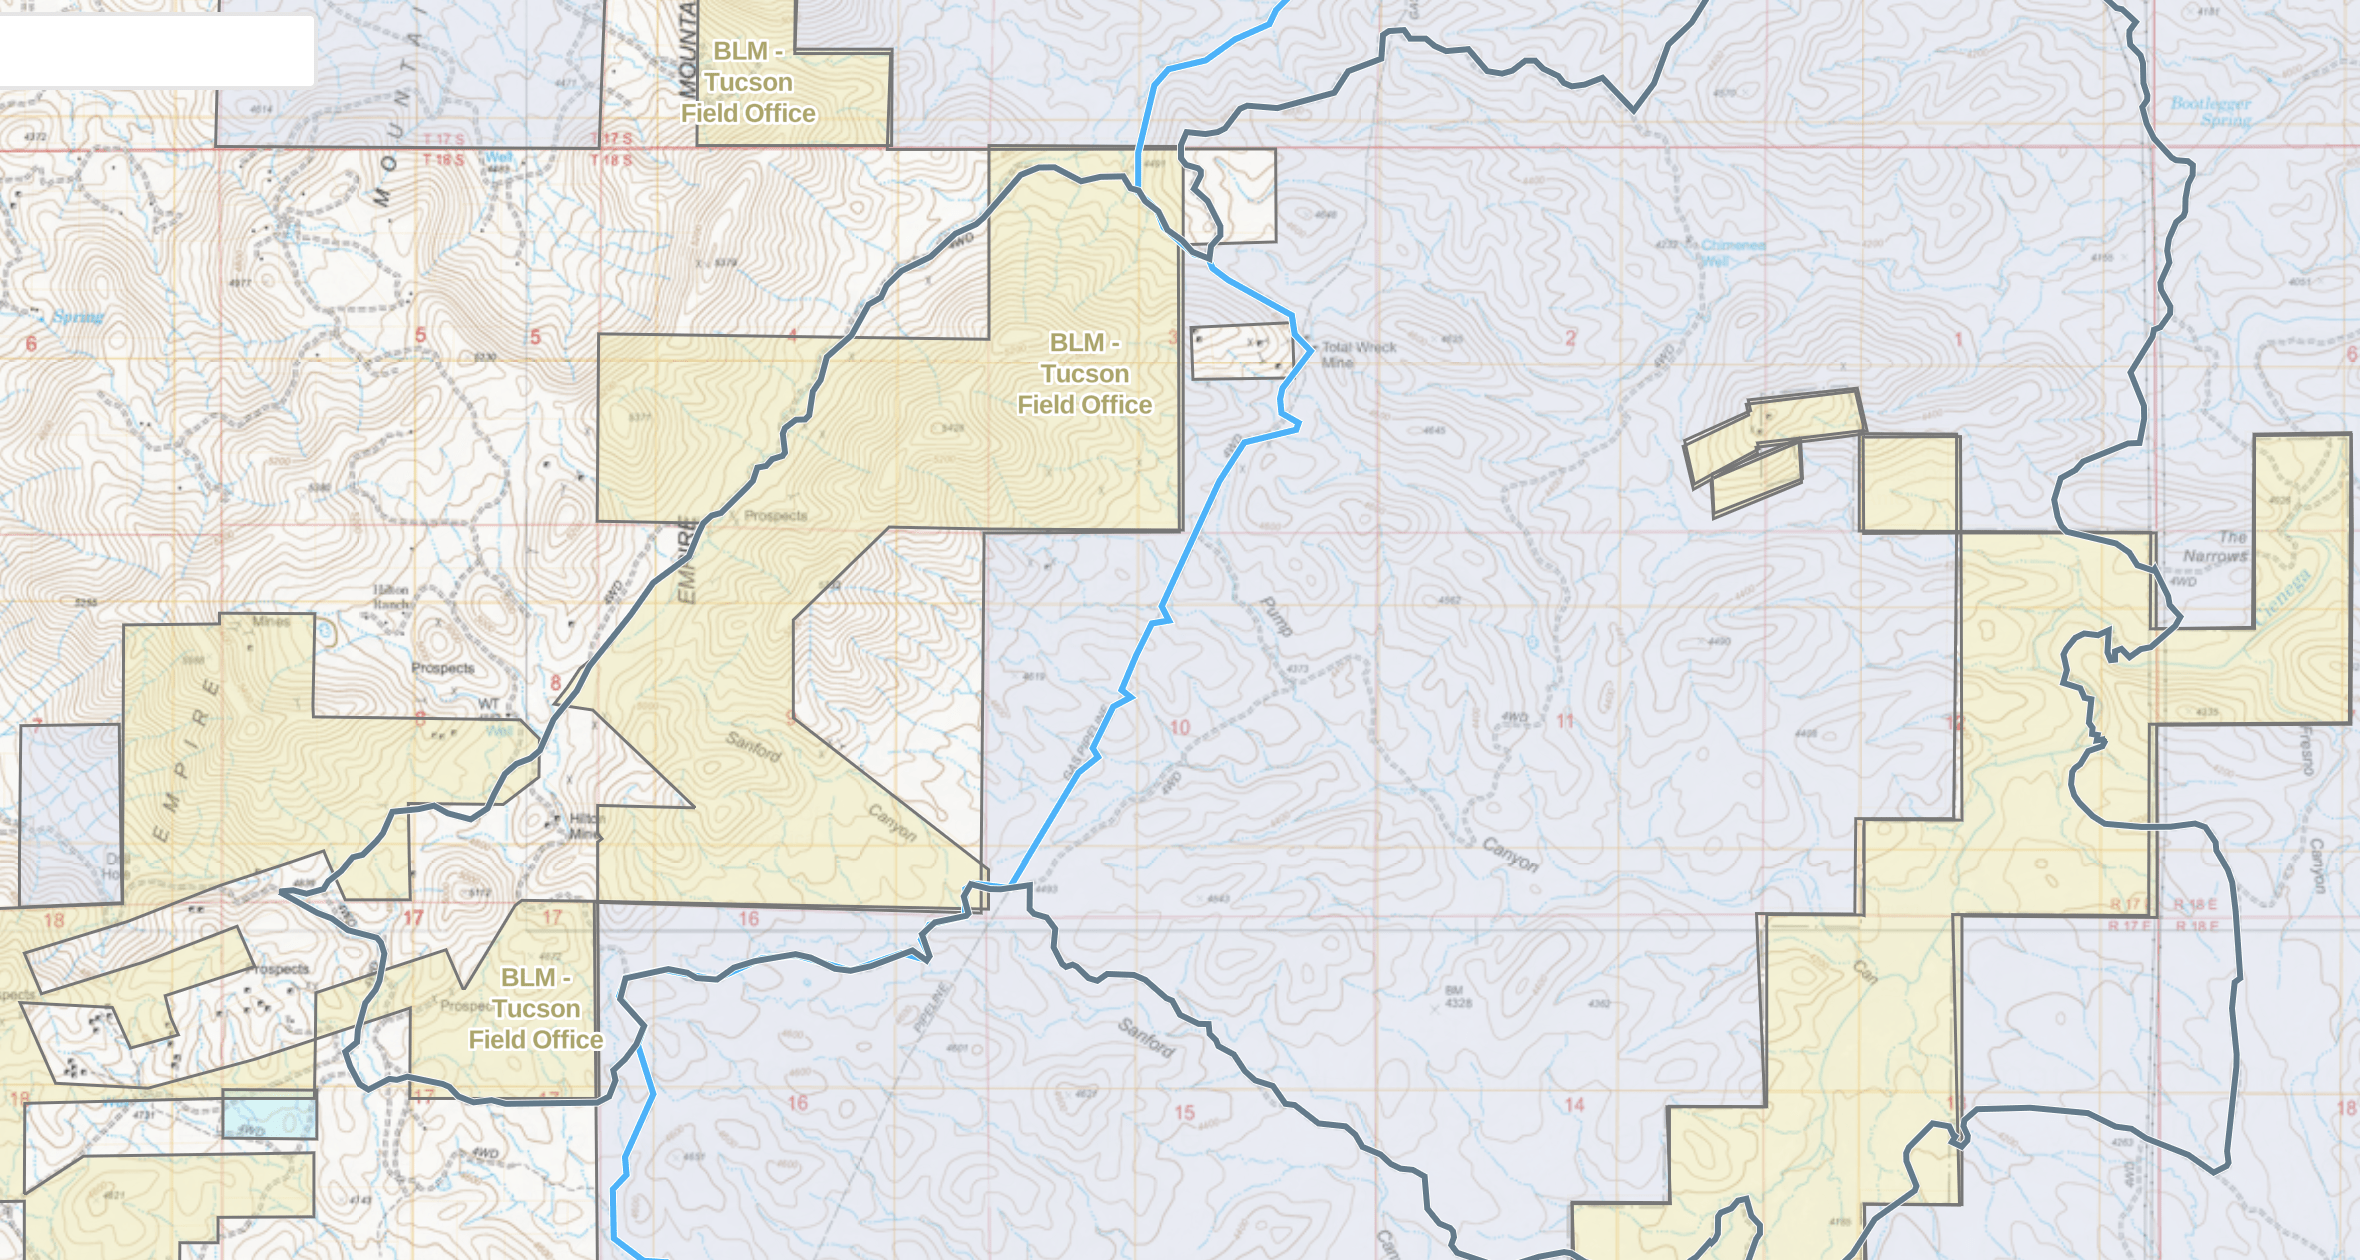 Map of area near the ghost town of Total Wreck in Arizona.